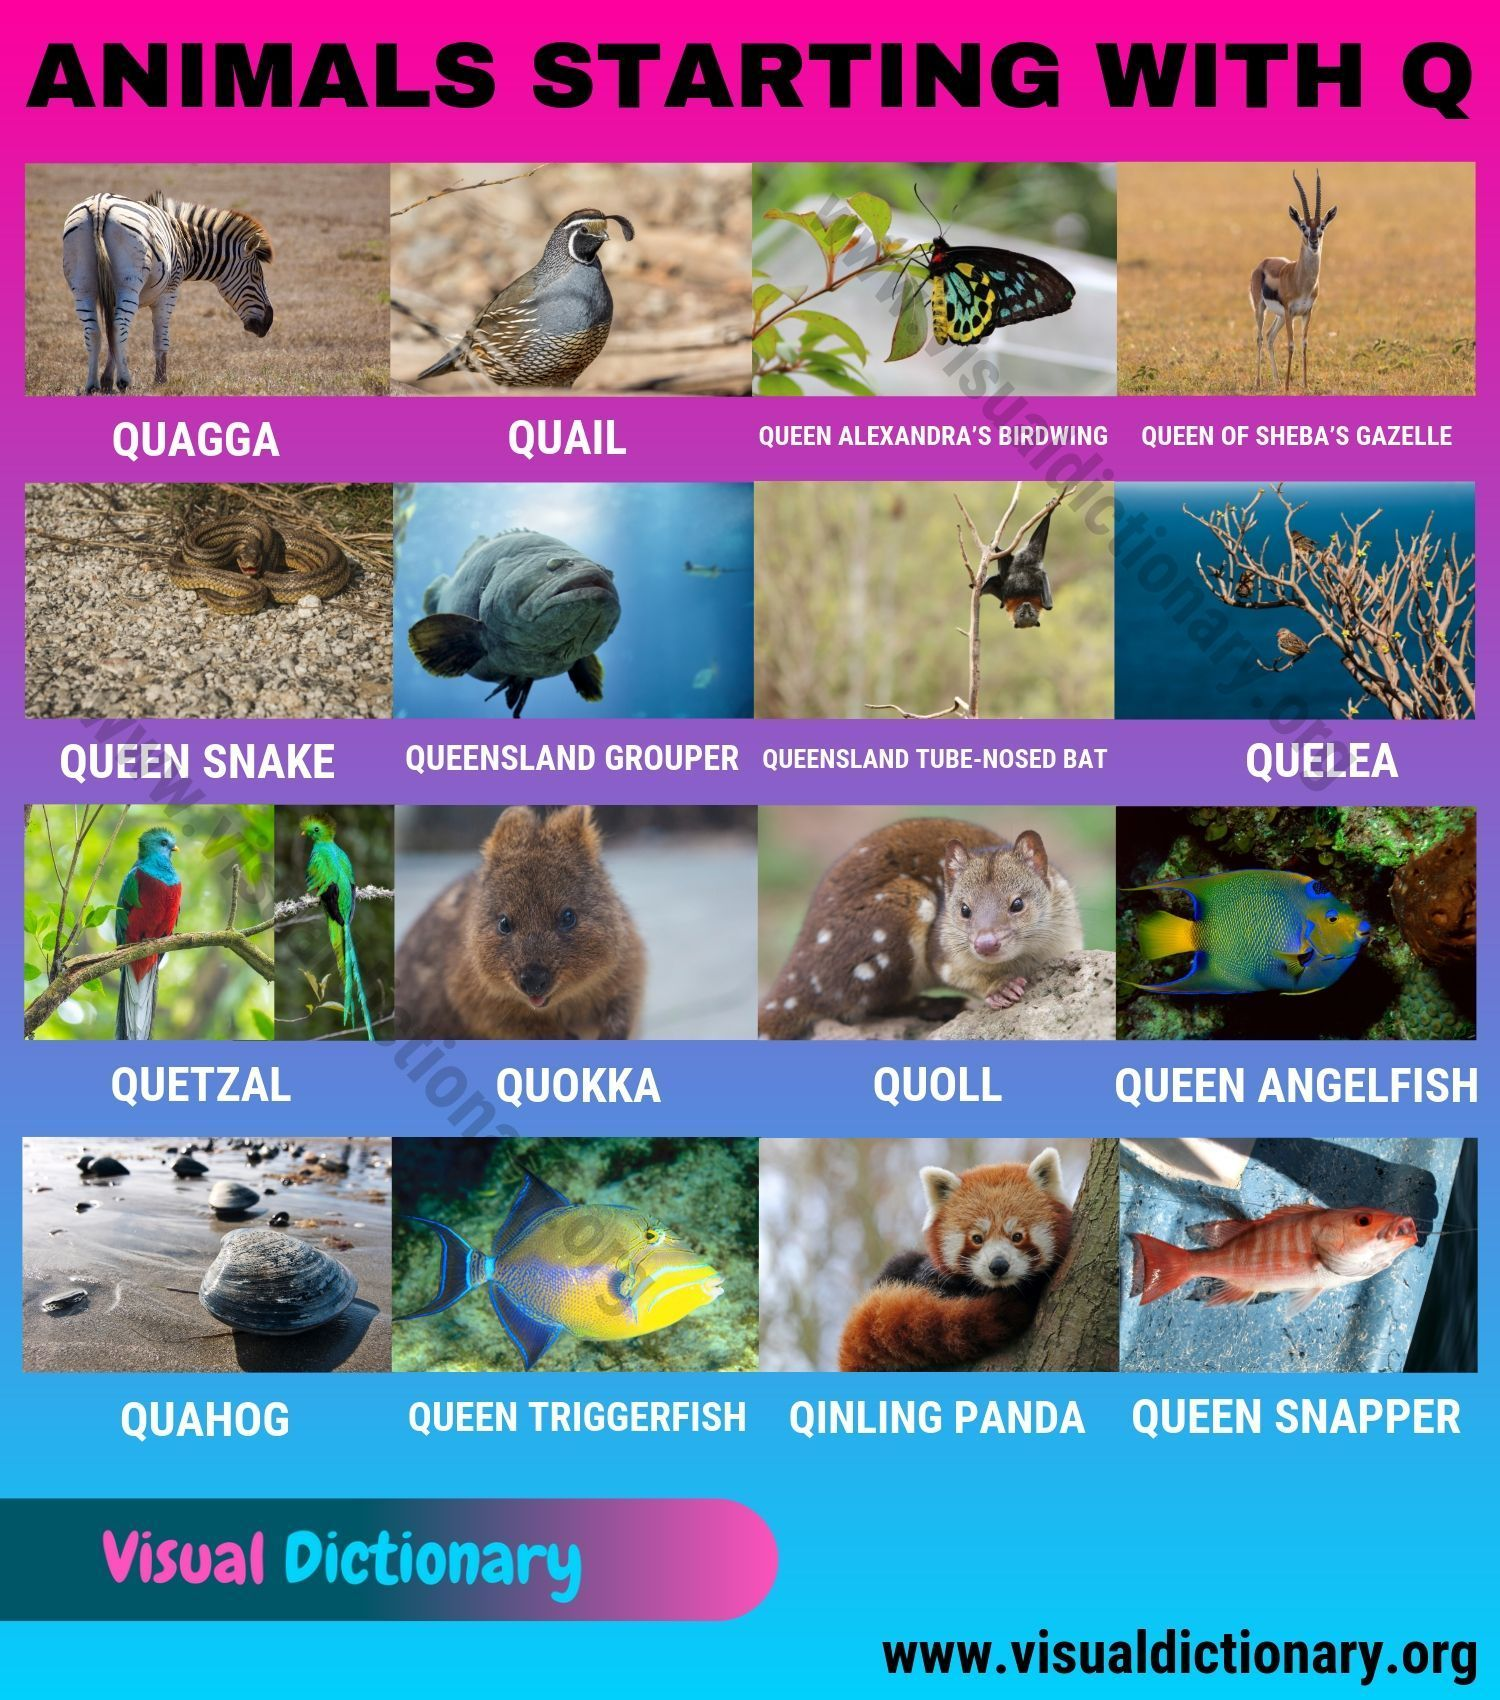 Animals That Start With Q Amazing List Of 15 Animals Beginning With Q Visual Dictionary In 2020 Animals Beginning With Q Animals Starting With Q Visual Dictionary